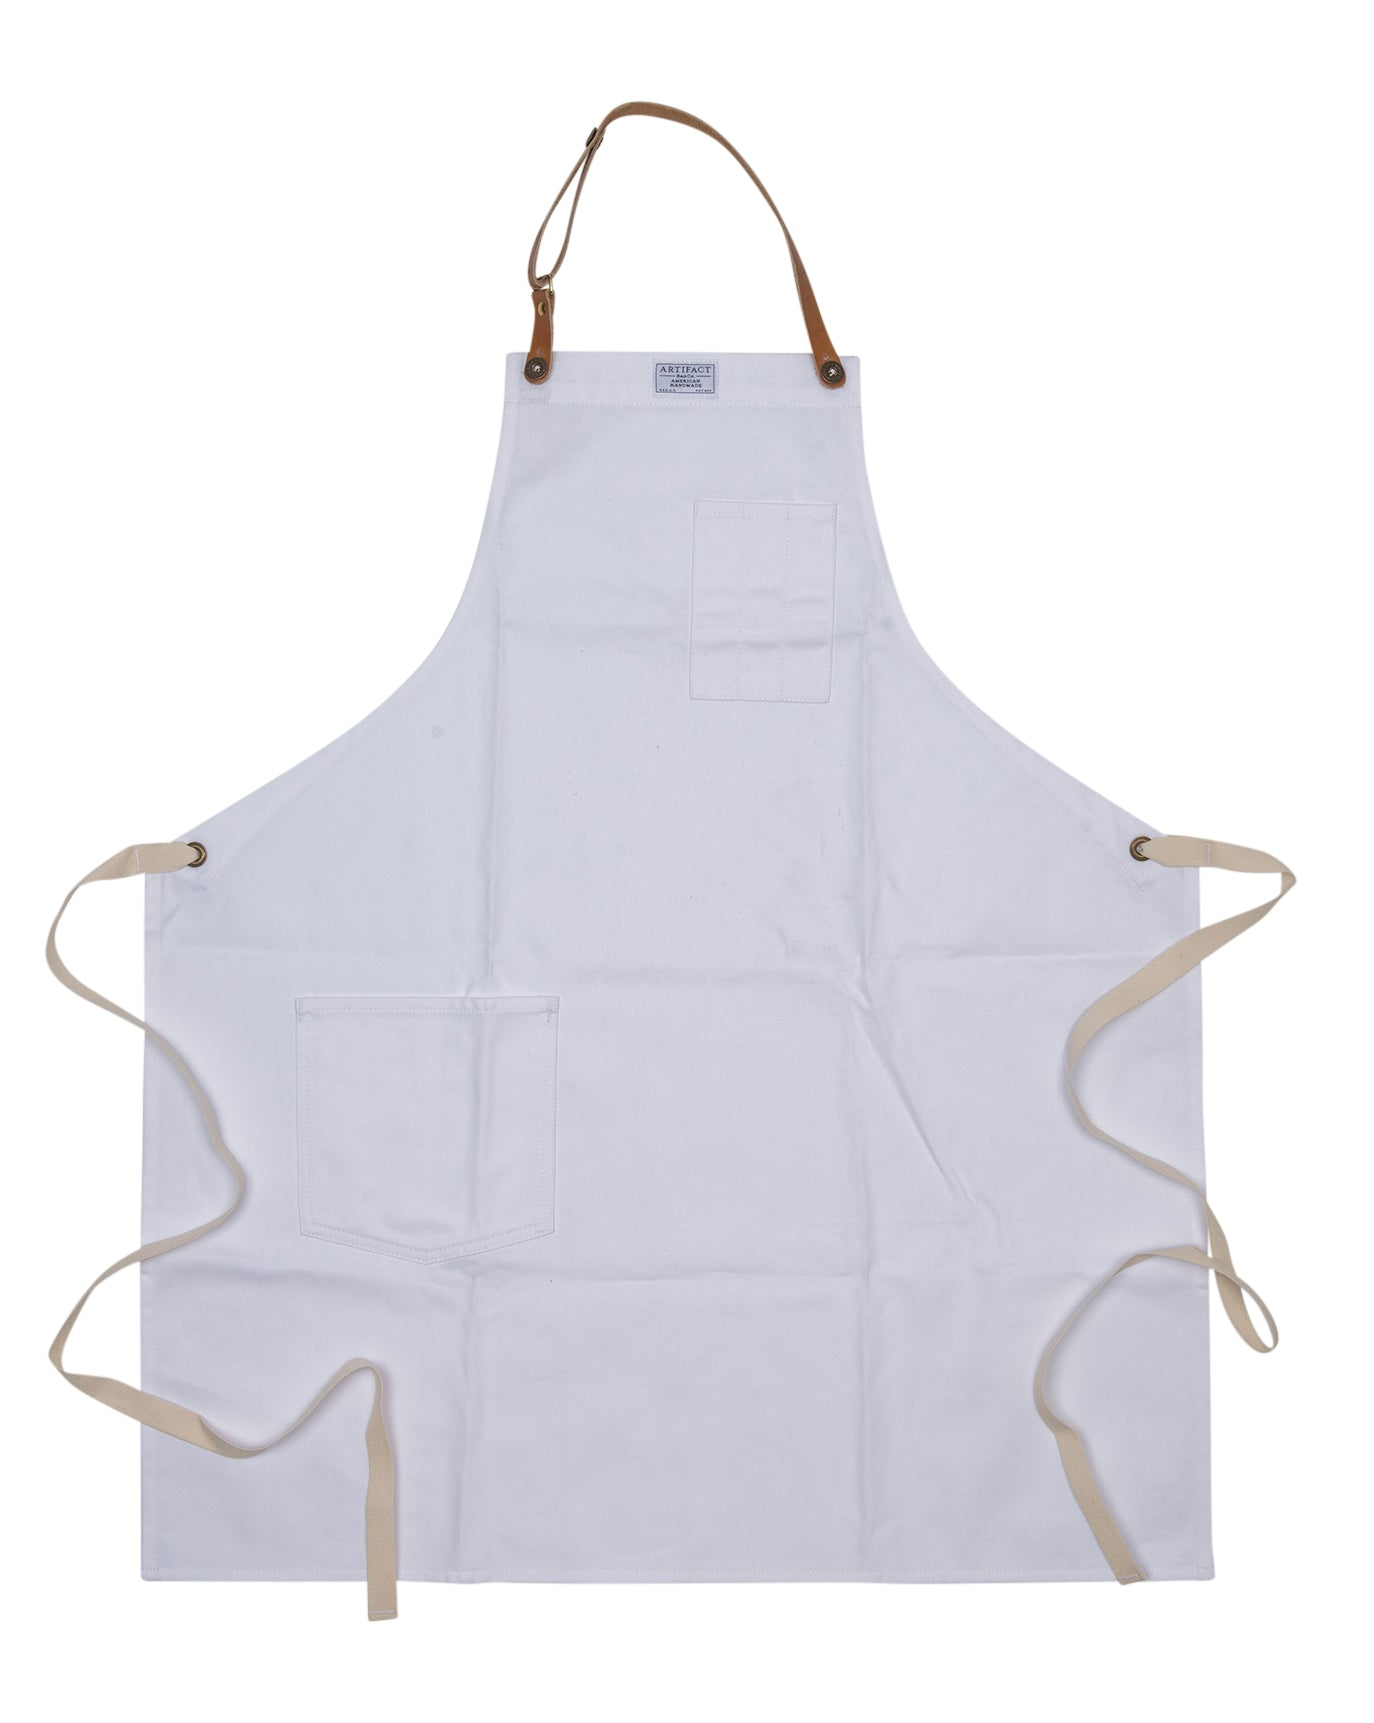 Artifact Pure White Brushed Twill Apron w/ Leather Leather Strap - Universal Fit